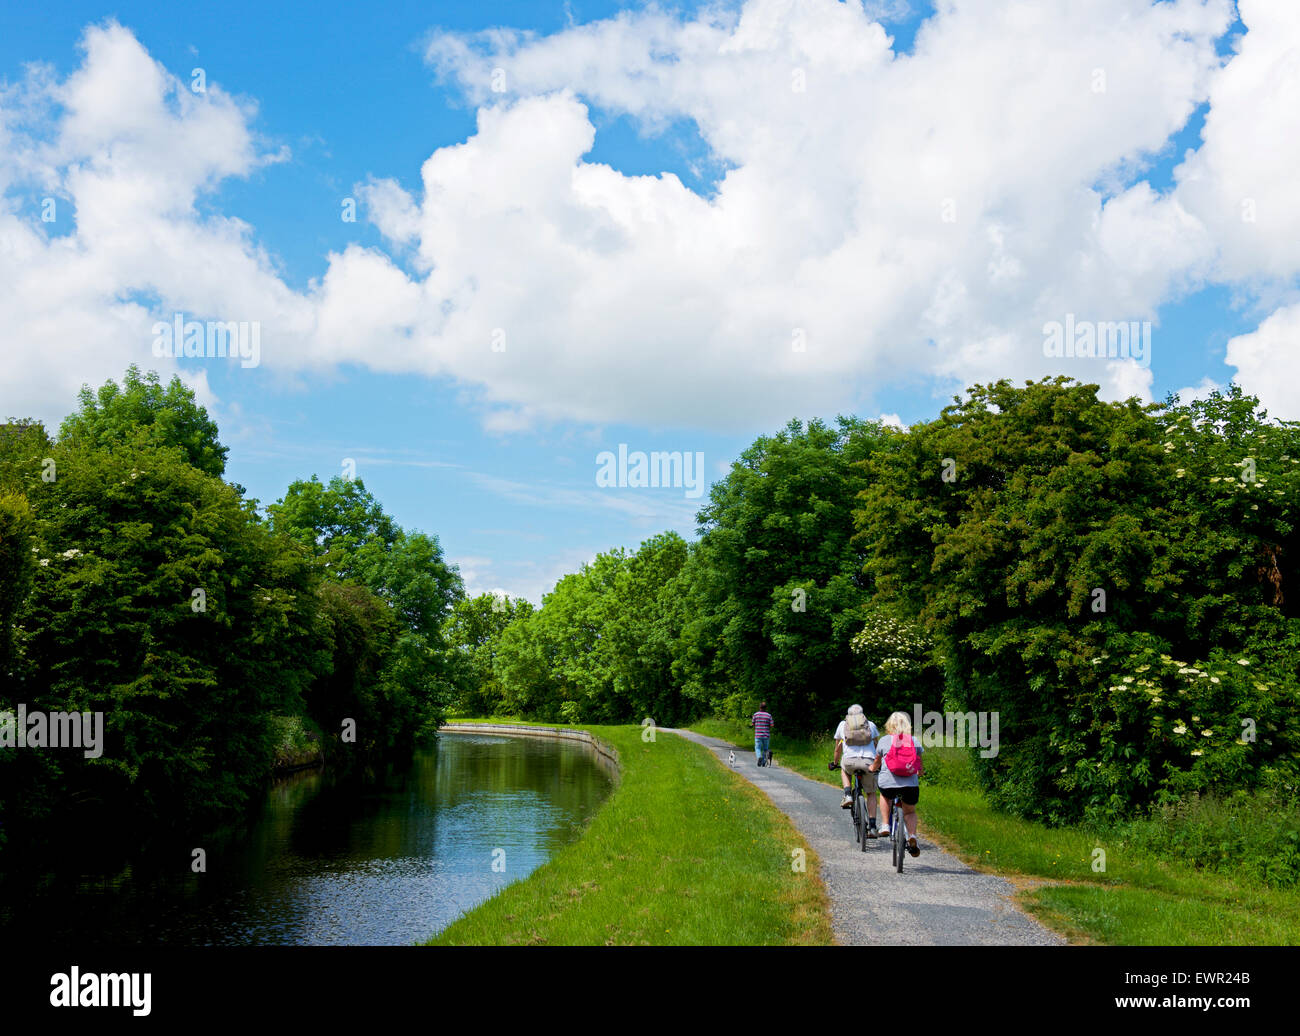 Cyclists on the towpath of the Leeds and Liverpool Canal near Barnoldswick, Lancashire, England UK Stock Photo